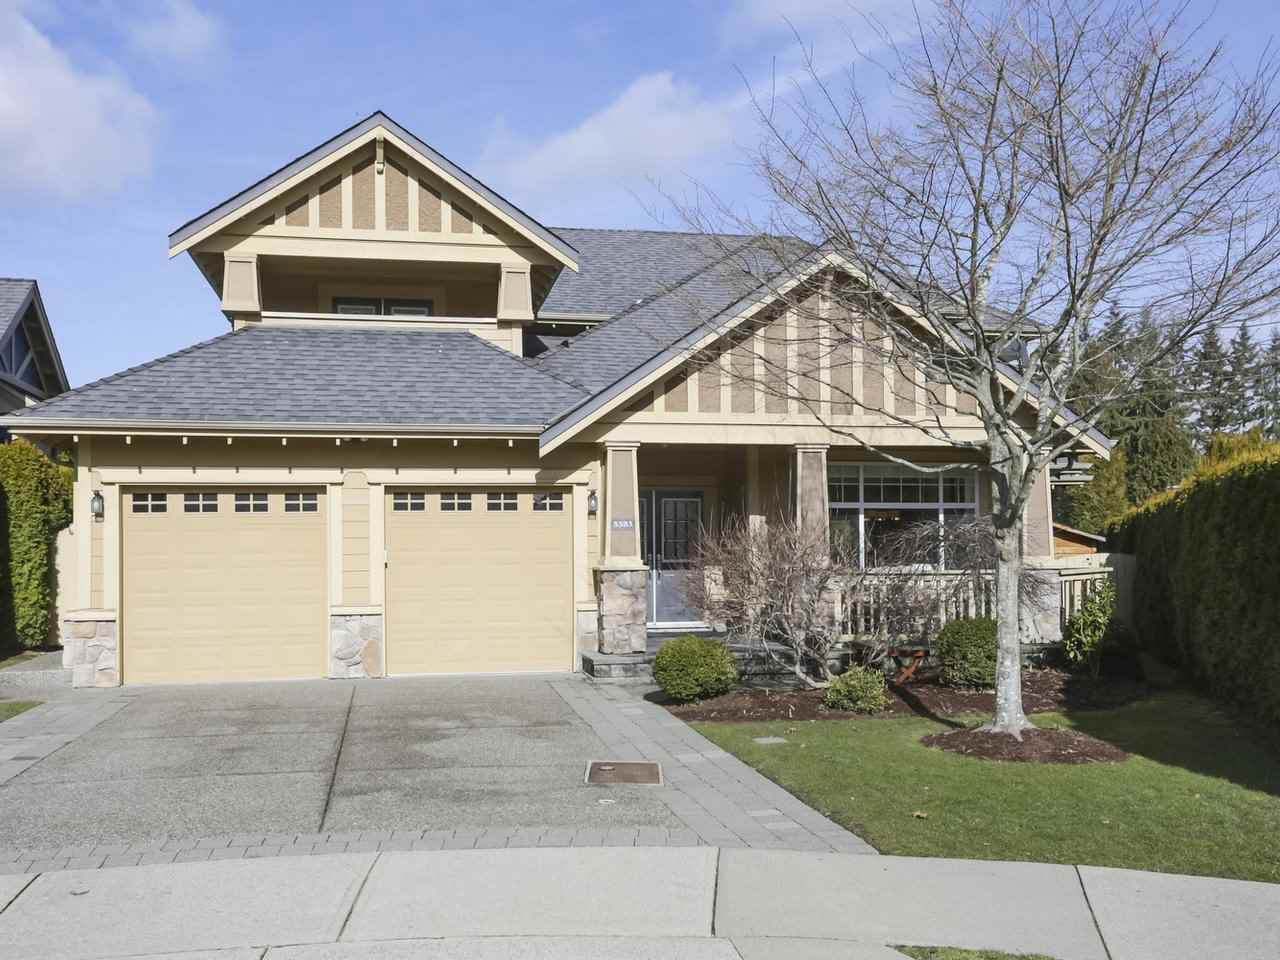 Main Photo: 5383 SPETIFORE Crescent in Delta: Tsawwassen Central House for sale (Tsawwassen)  : MLS®# R2439998